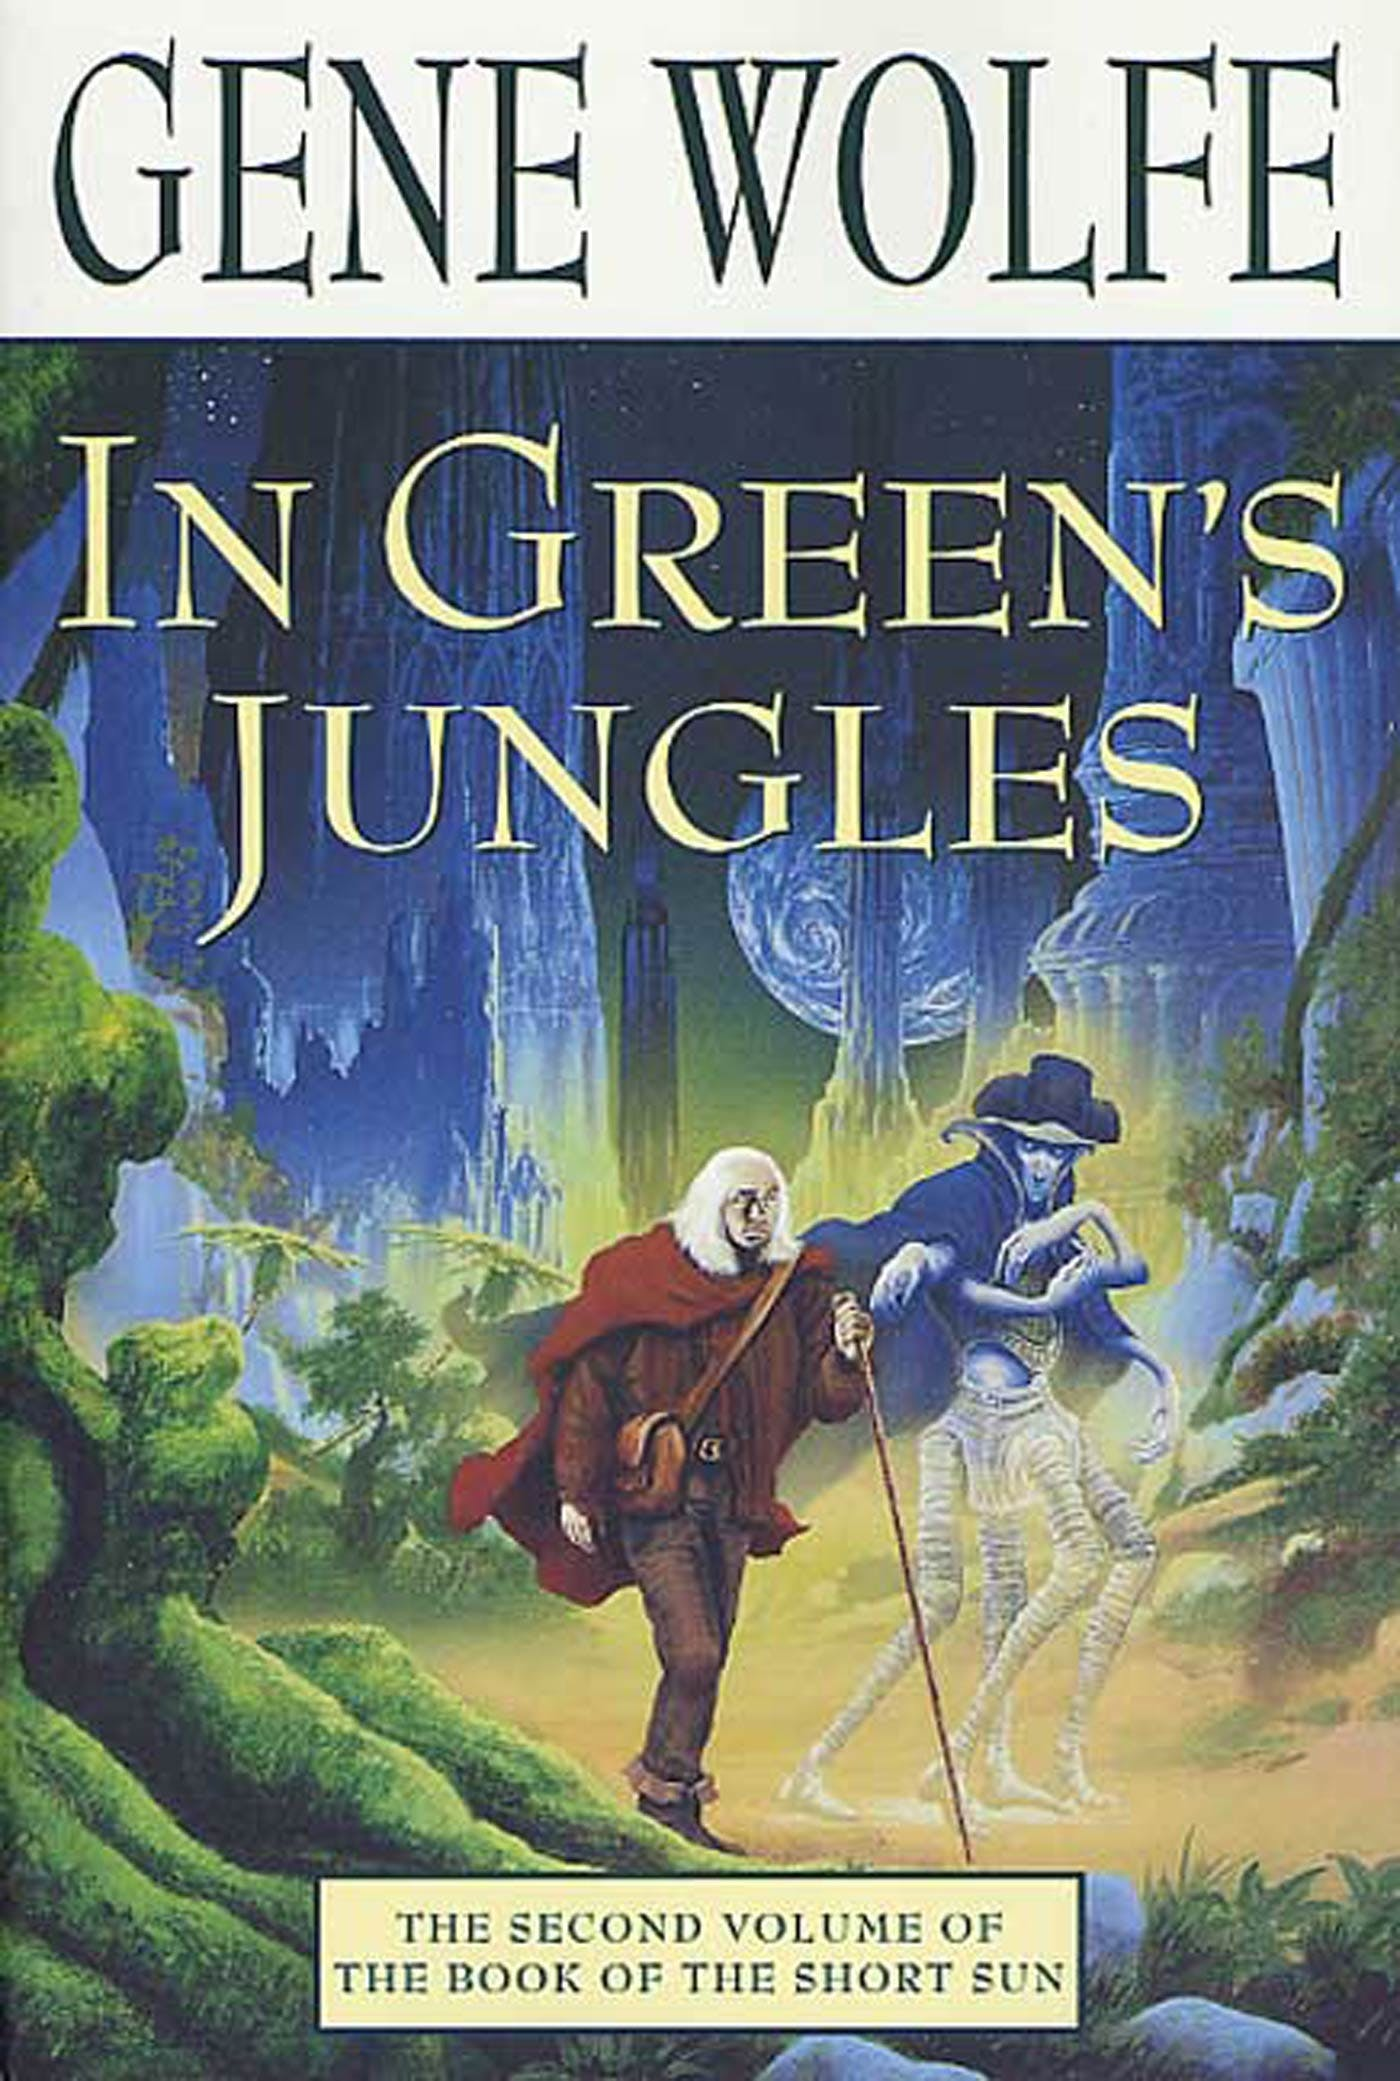 Image of In Green's Jungles